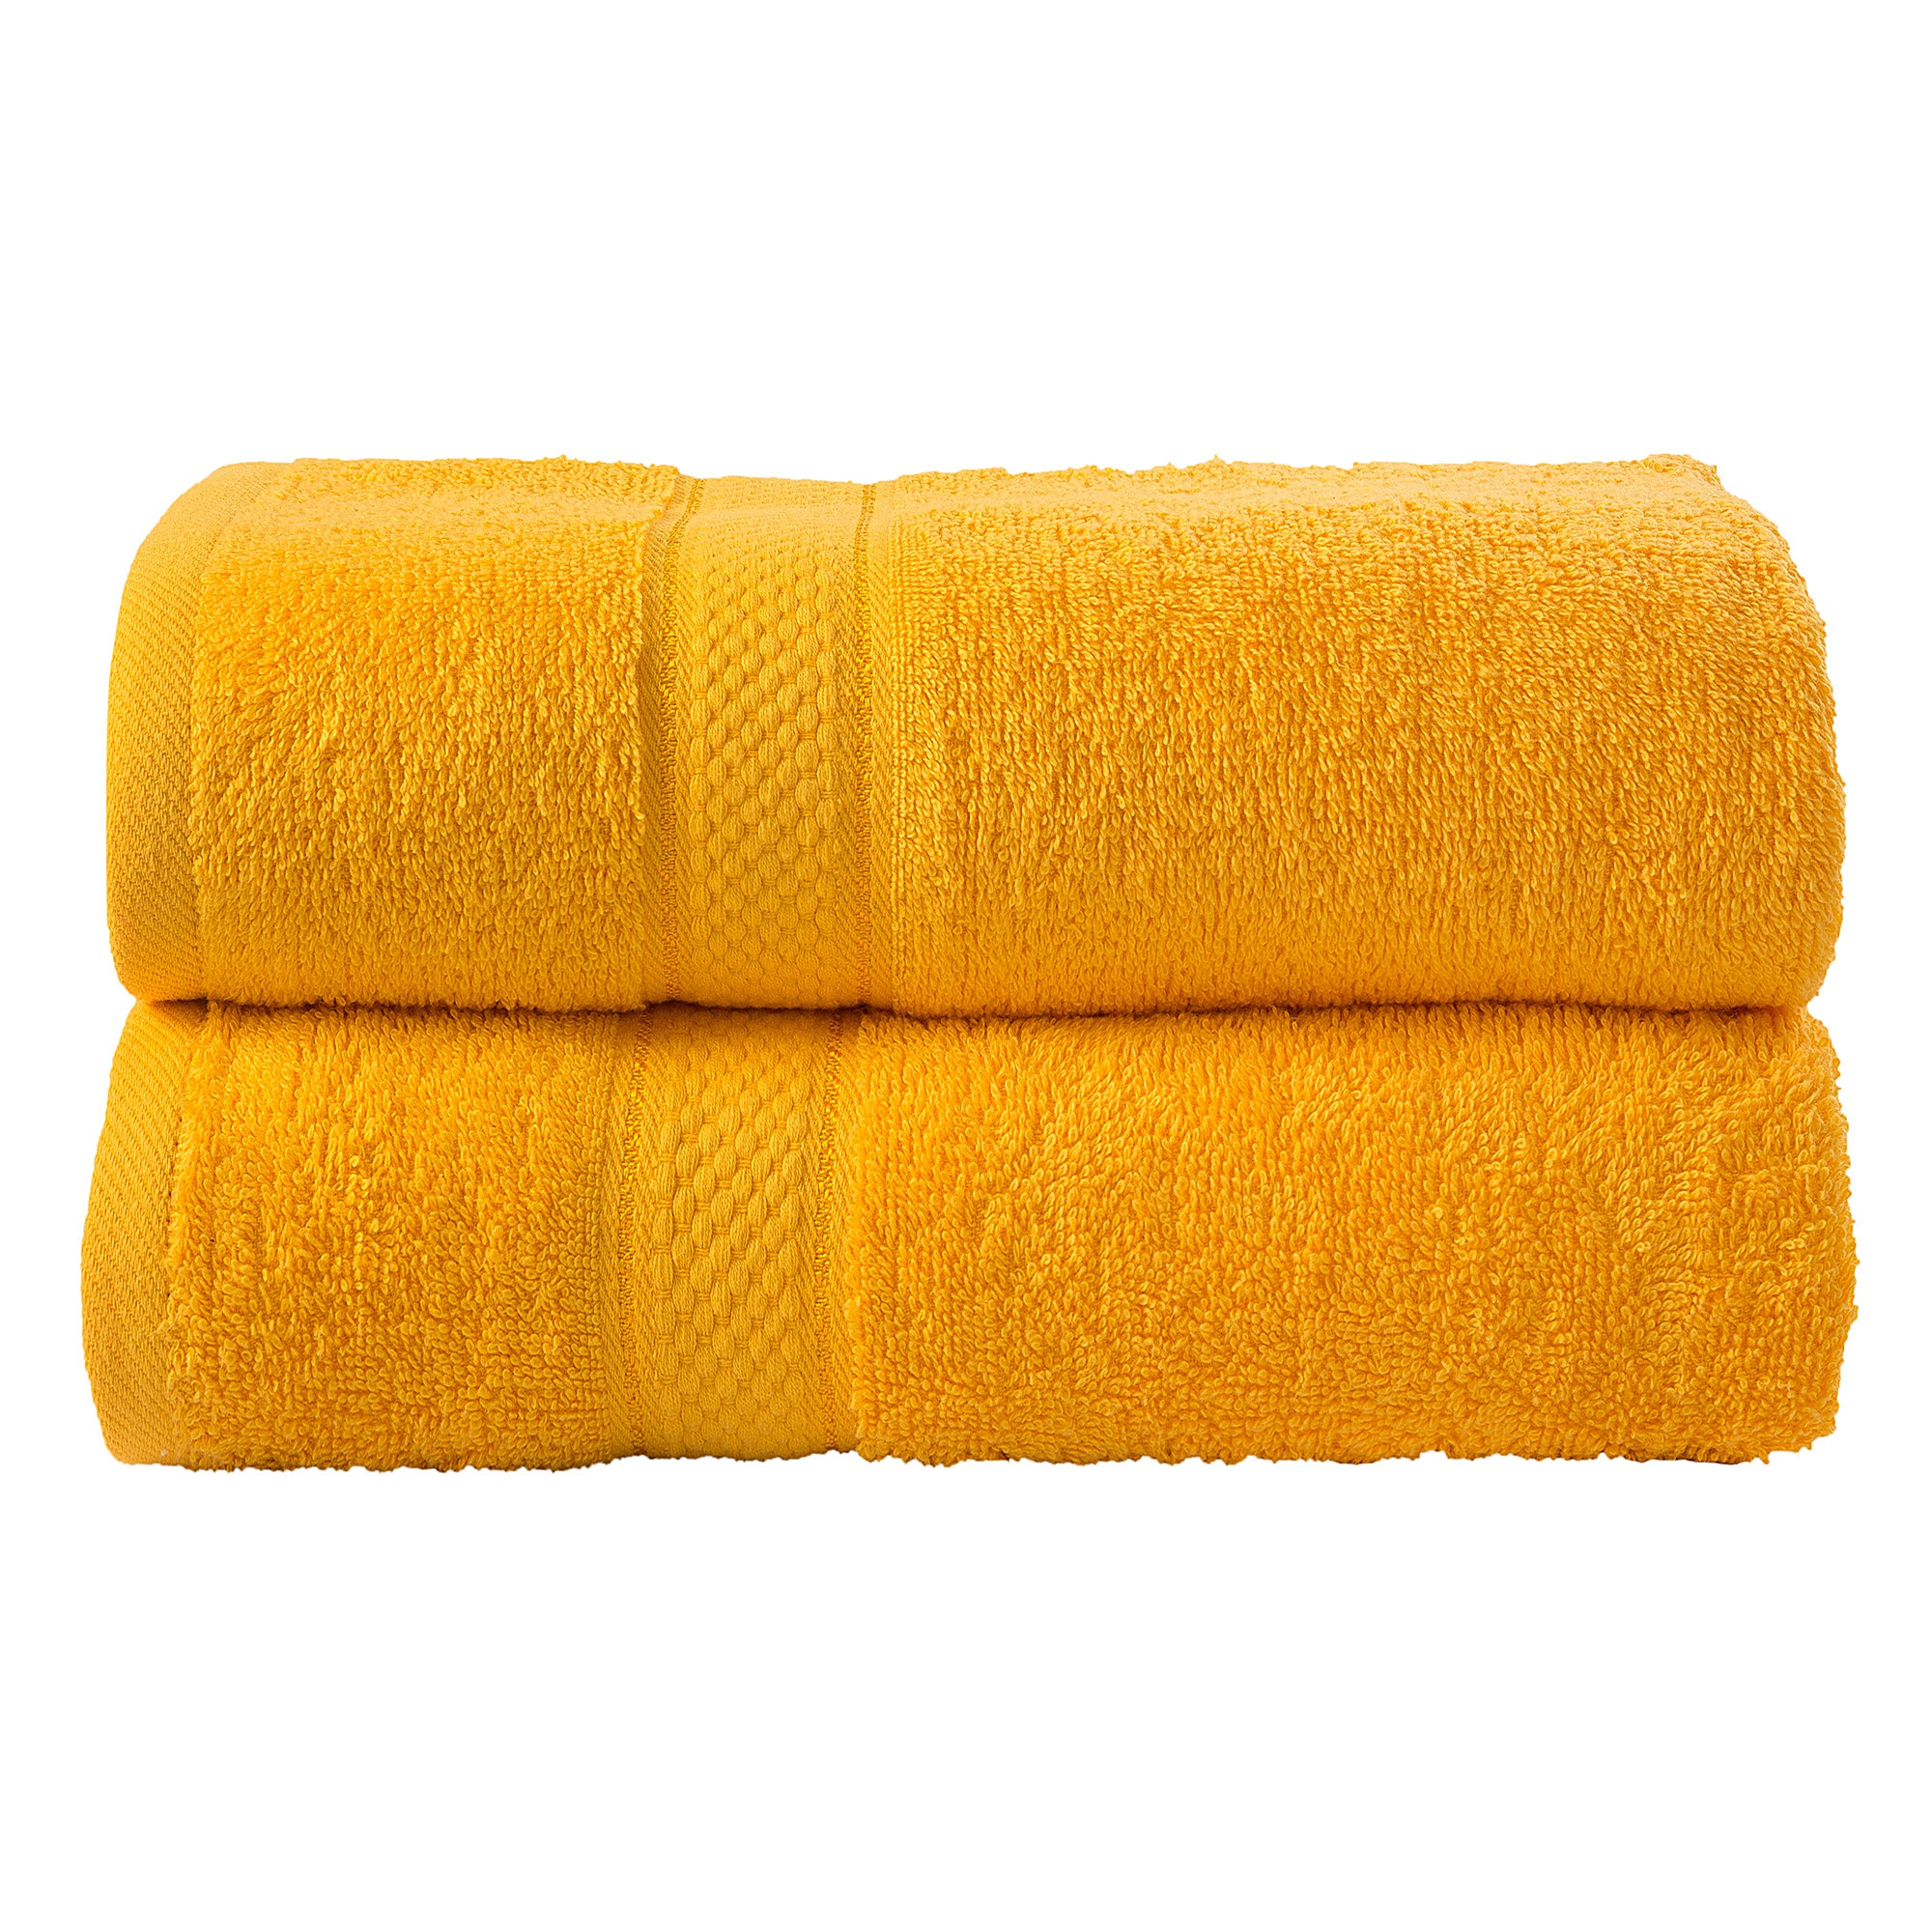 2 Pcs Bath Cotton Towel Bale Set Sunflower Plain